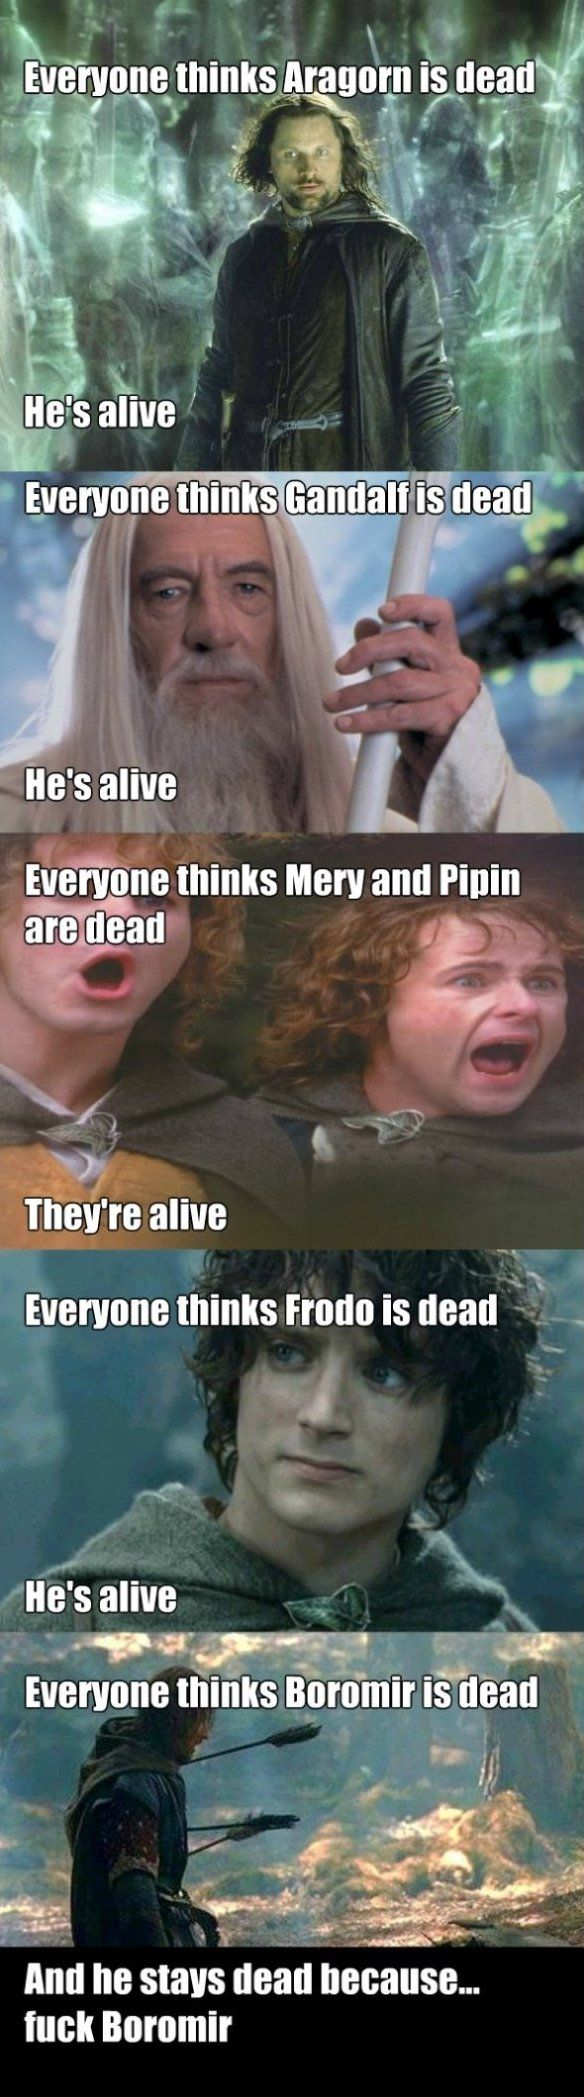 Because he was destined to be played by Sean Bean. And he must die in his roles. It's in his contract.